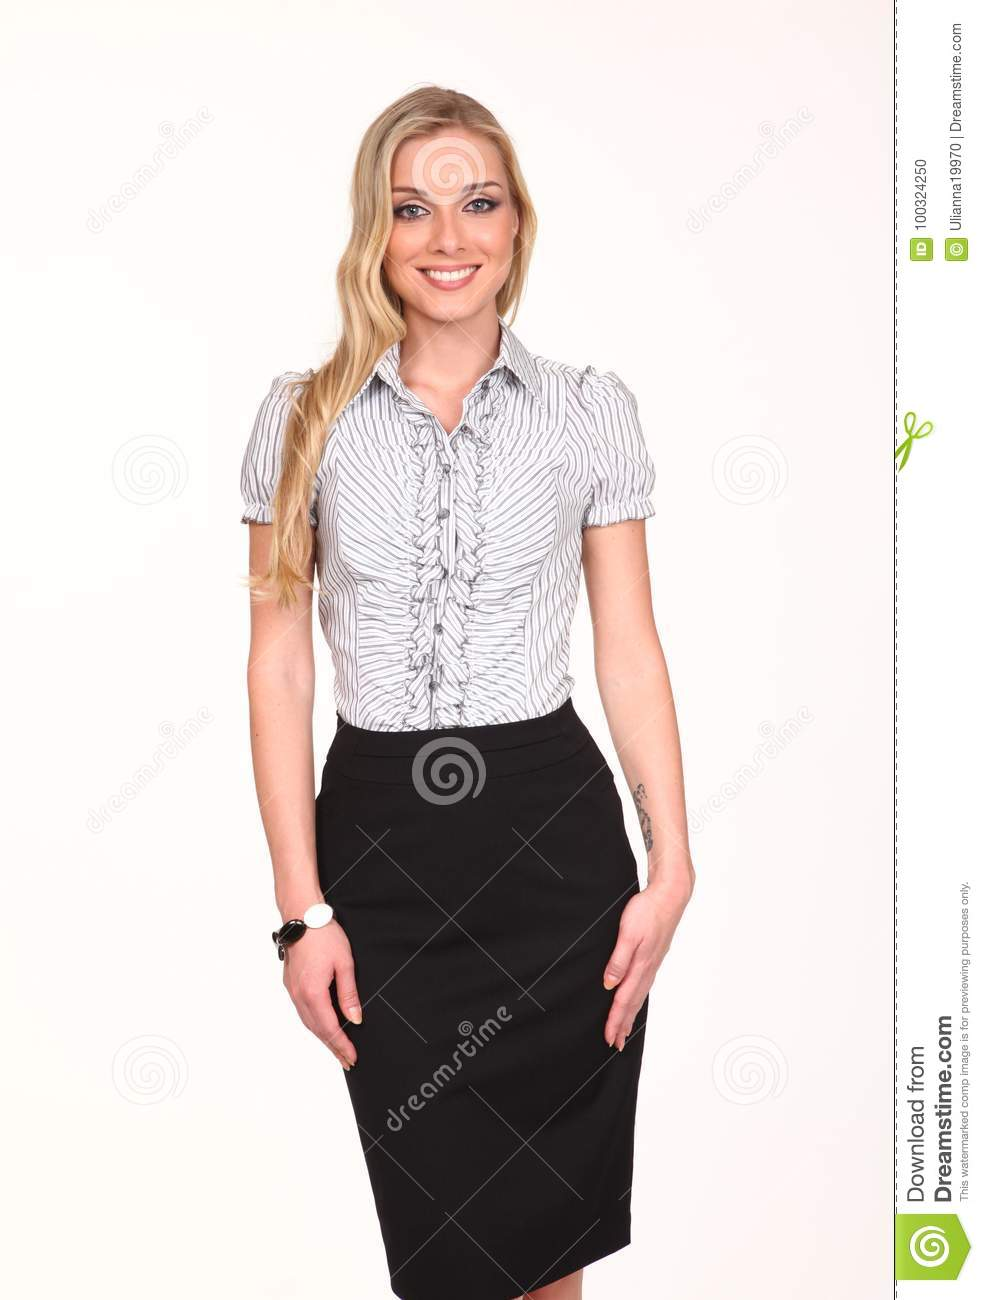 35193bd798c Blond business woman in official short sleeve white shirt black pencil  skirt close up photo isolated on white. More similar stock images